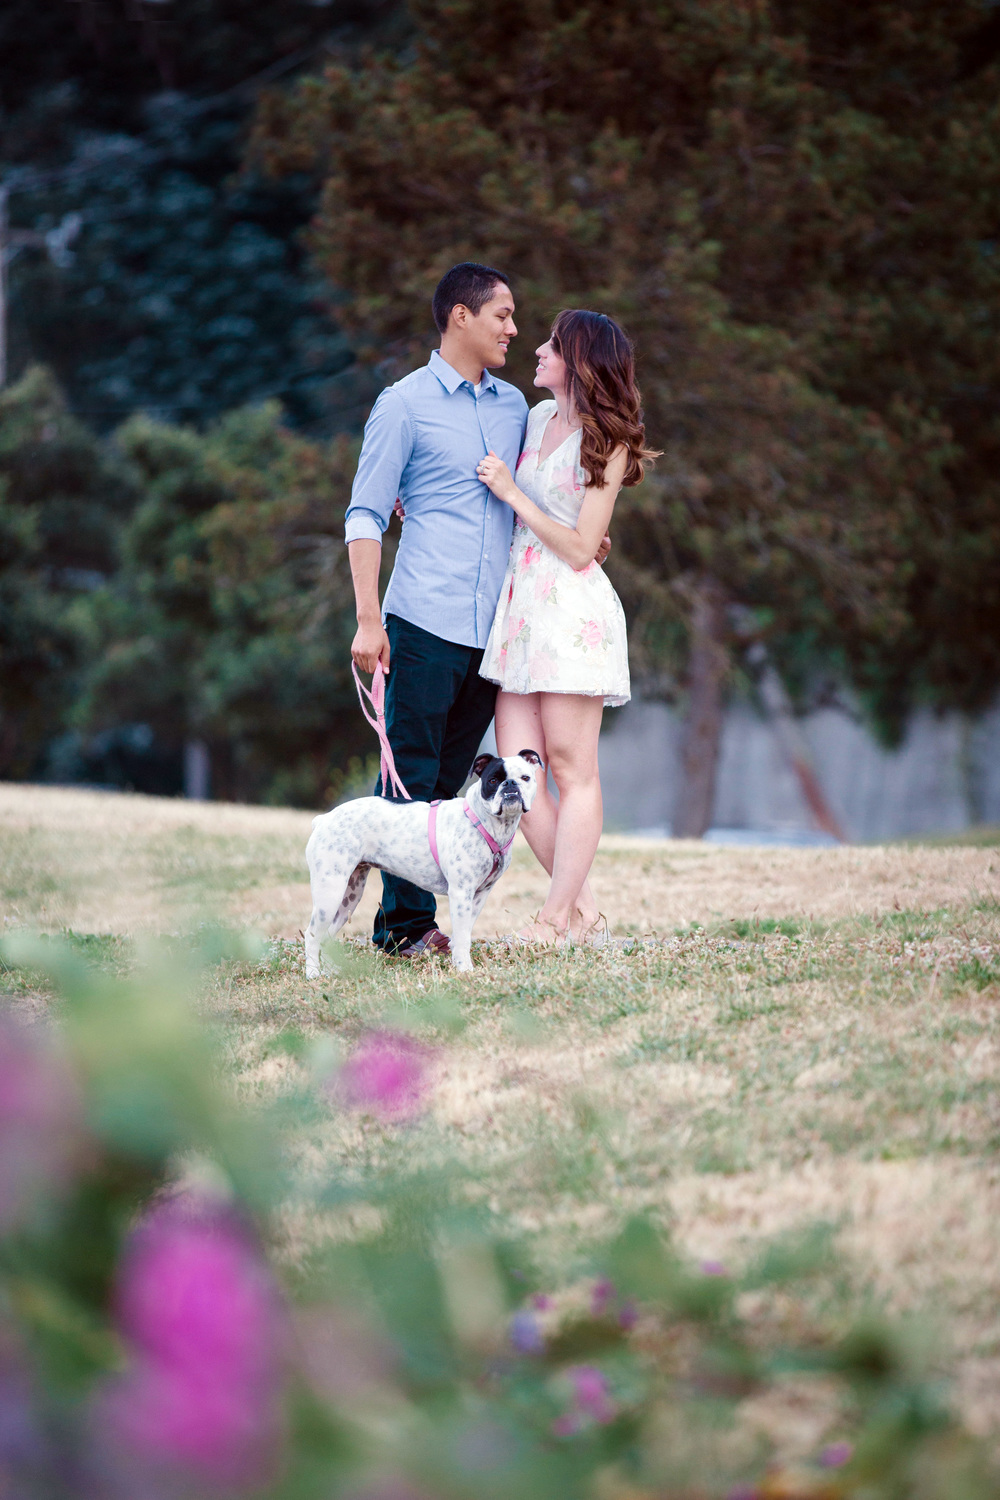 Cruz+Robert ©2015AdinaPrestonPhotography-Seattle+Photographer+Engagement-Weddings-55.jpg